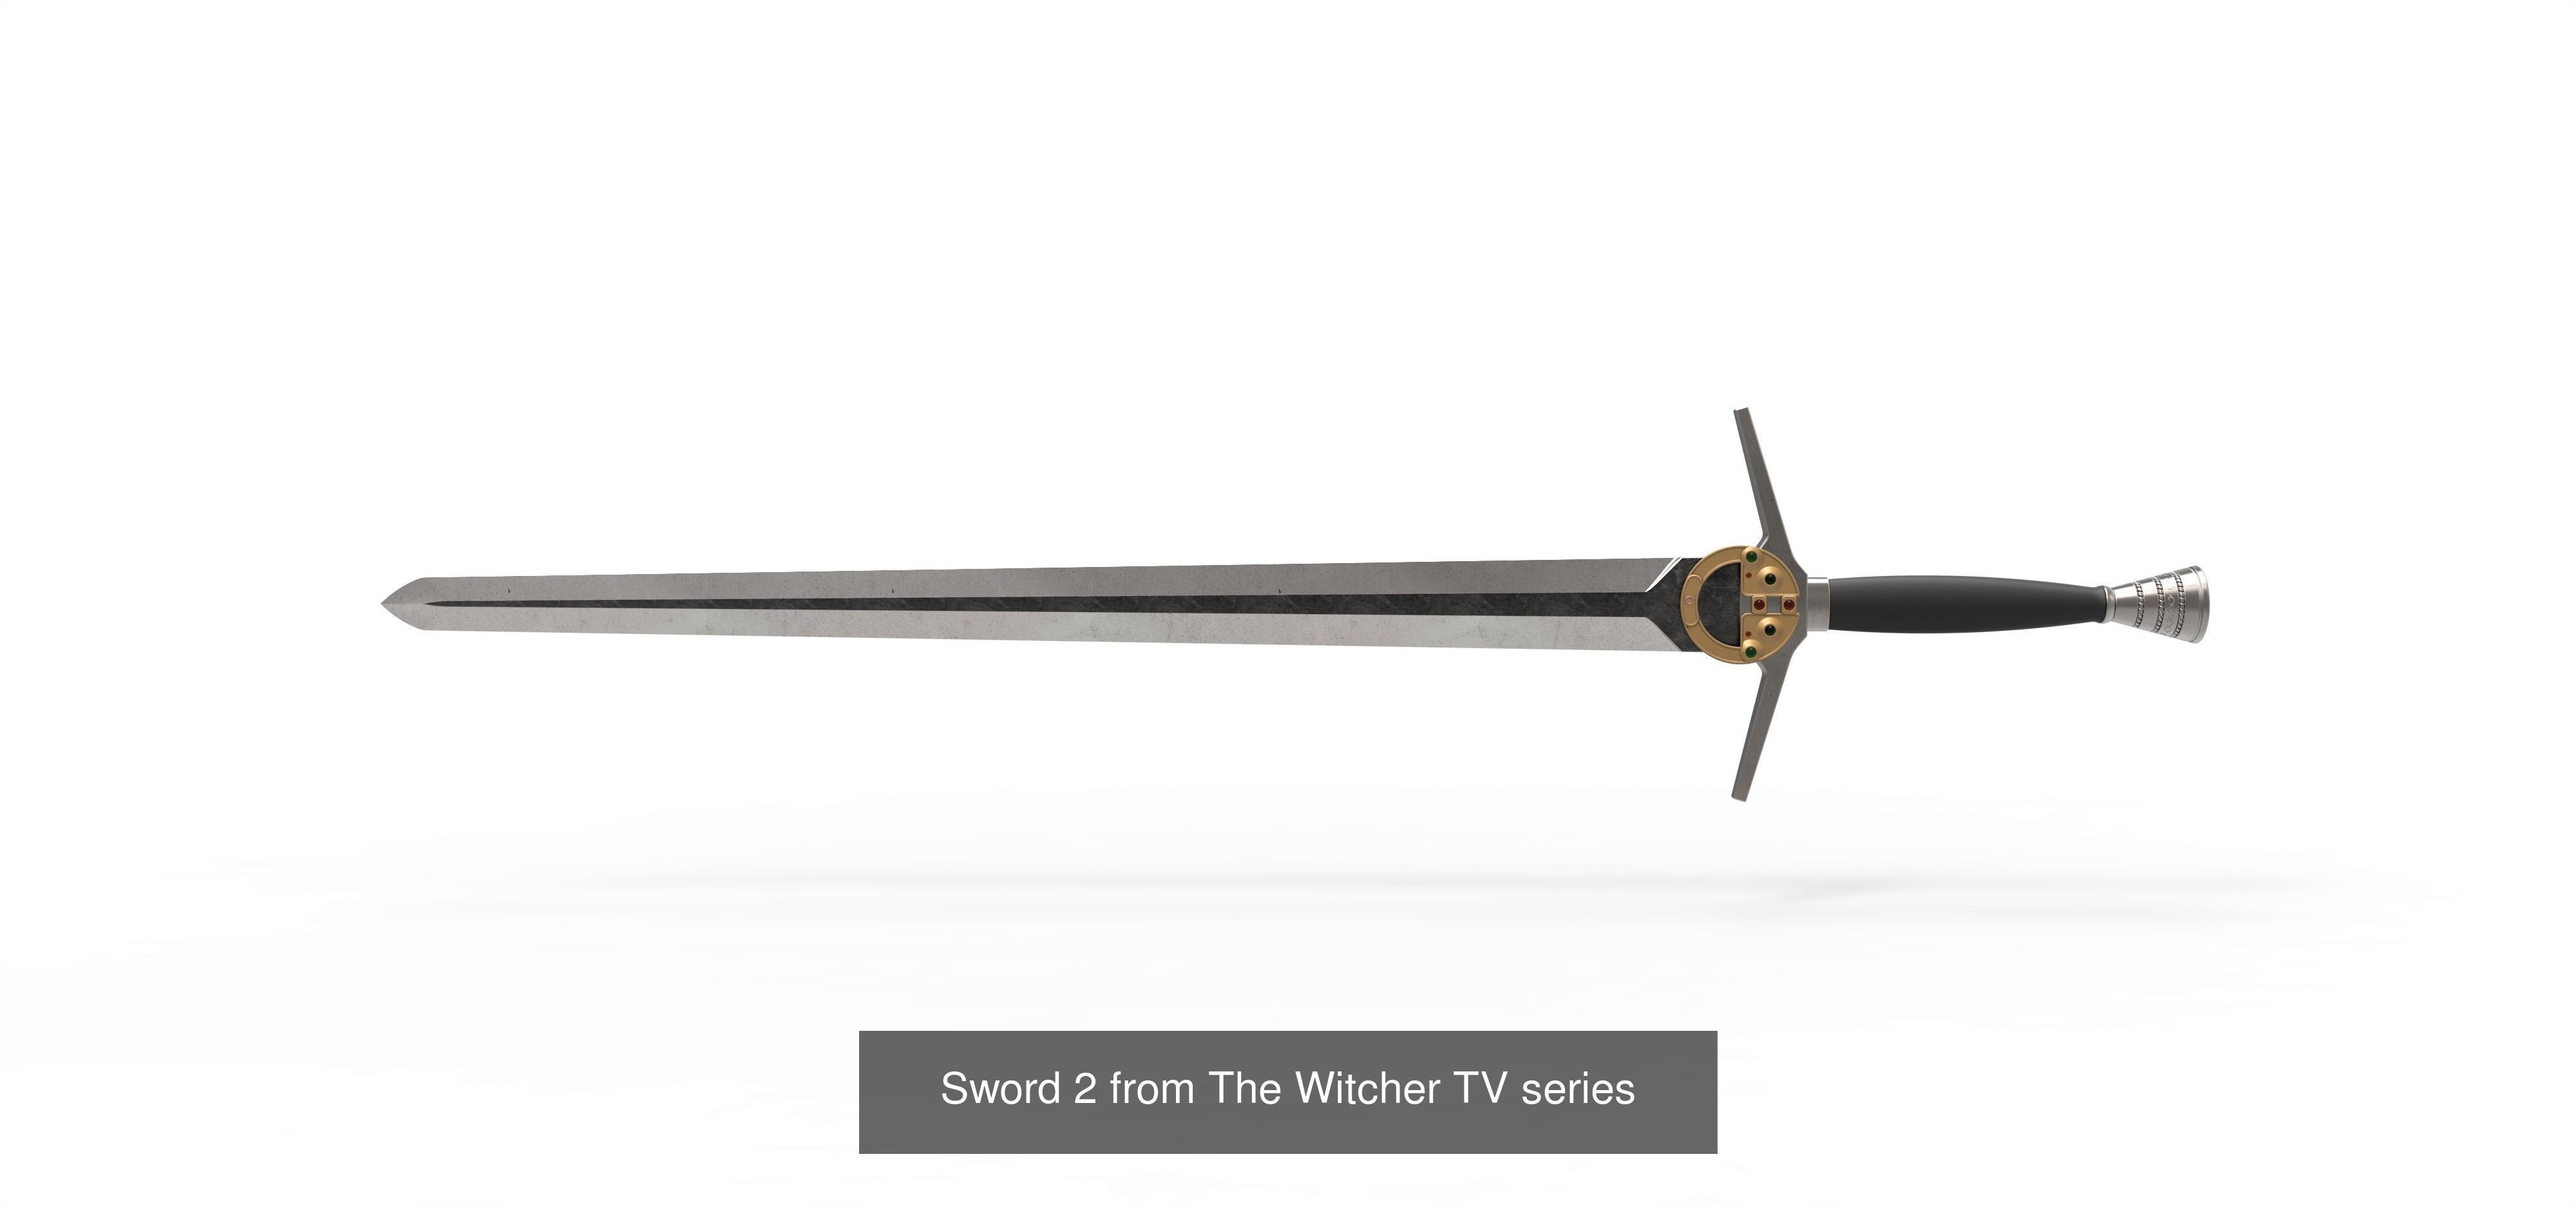 Swords of Geralt from The Witcher TV series